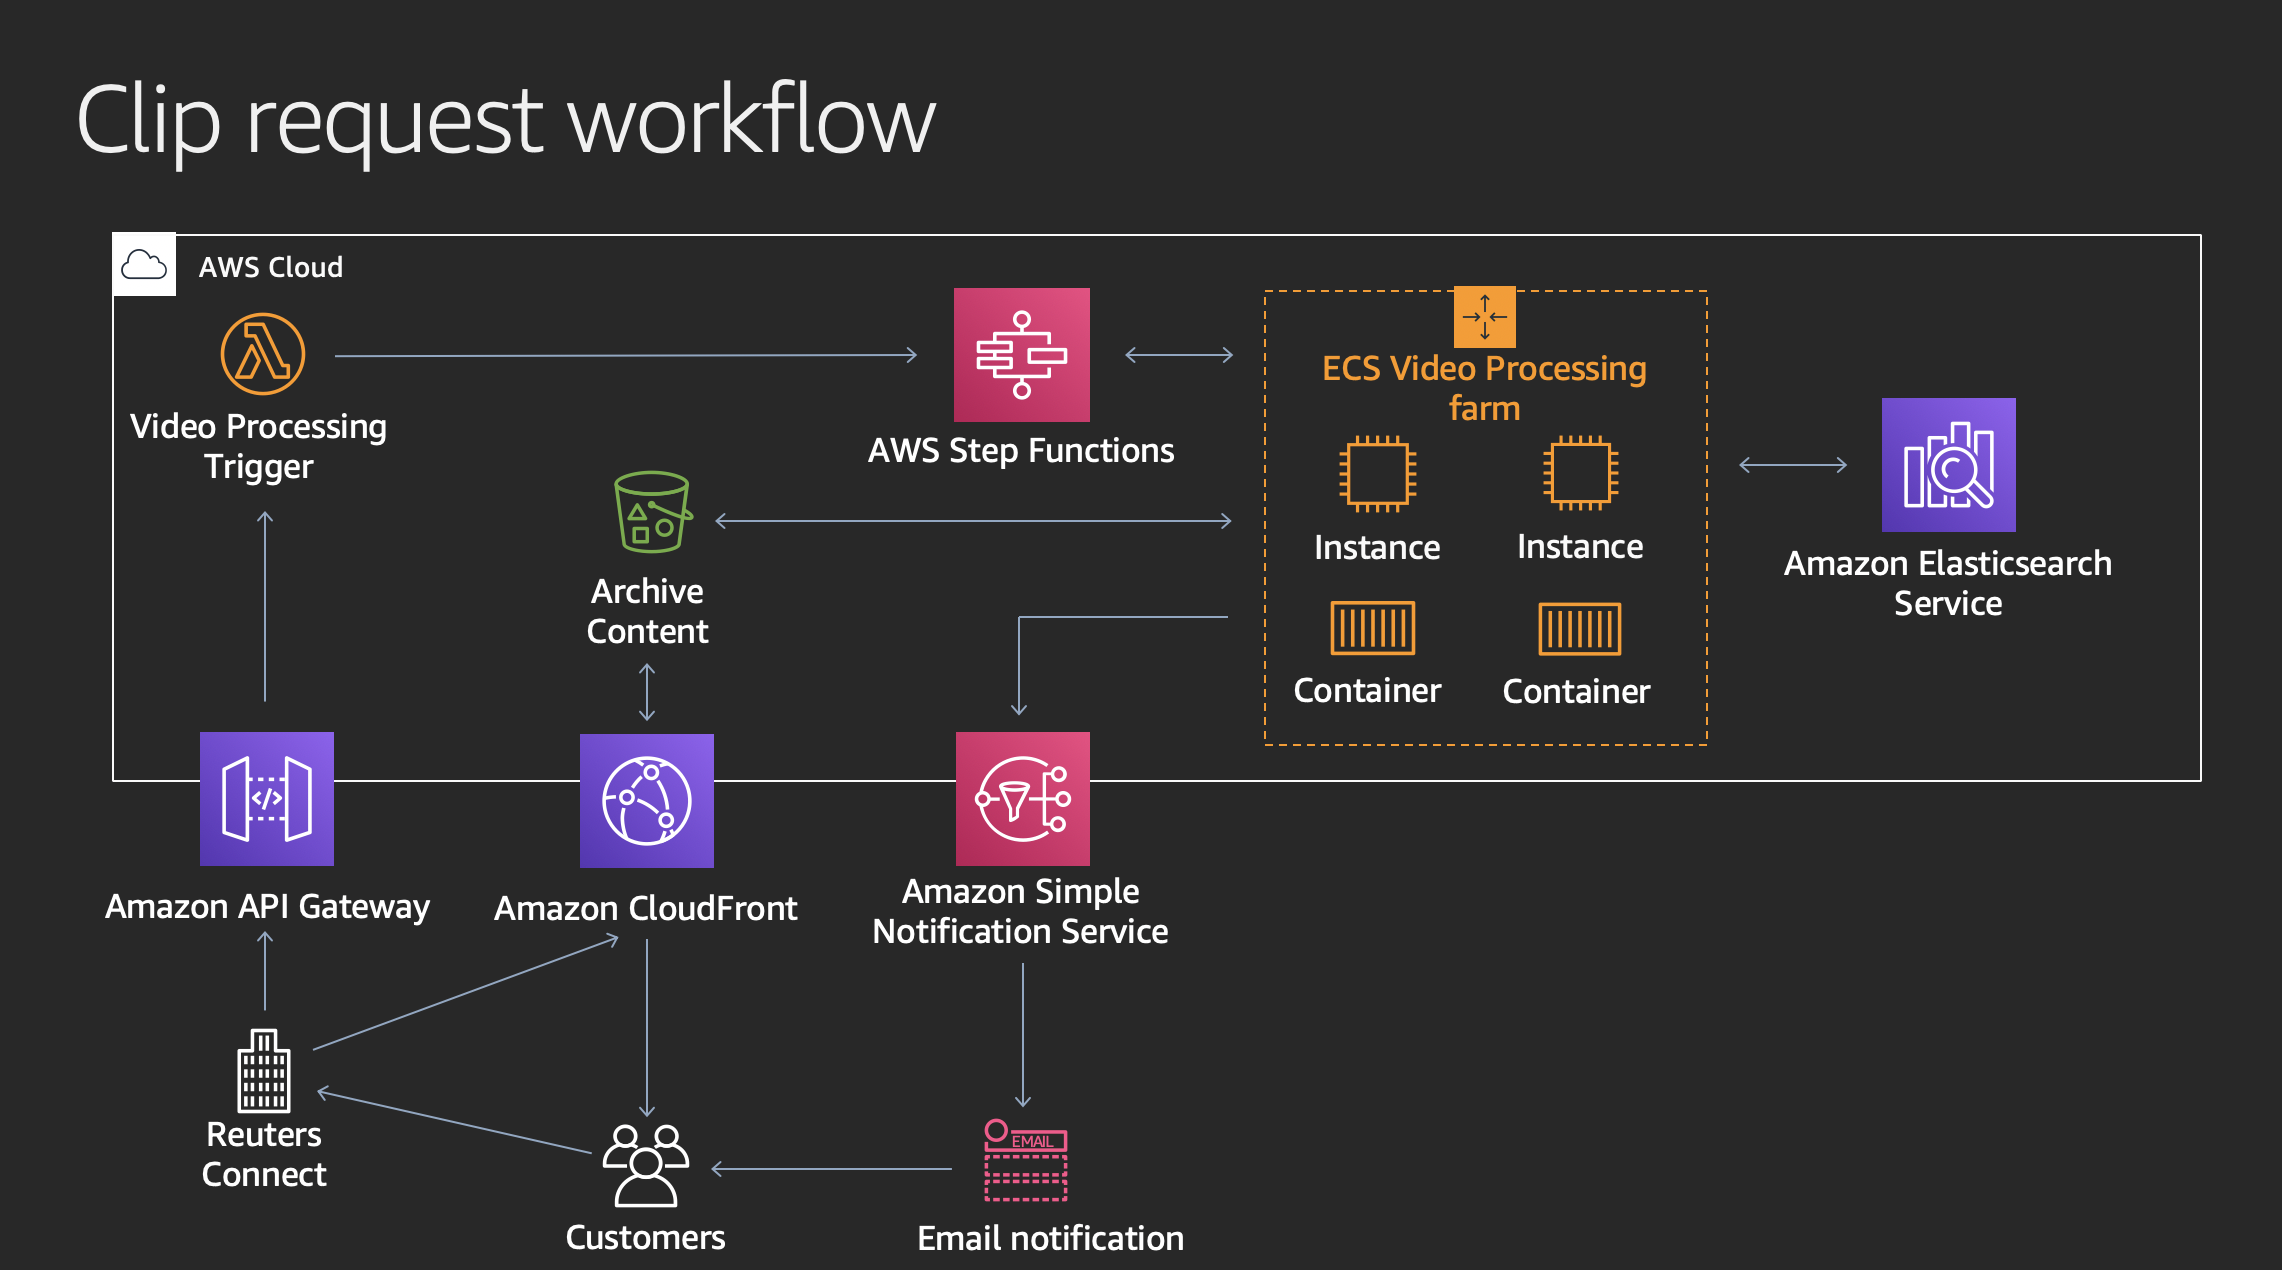 Reuters's clip request workflow architecture